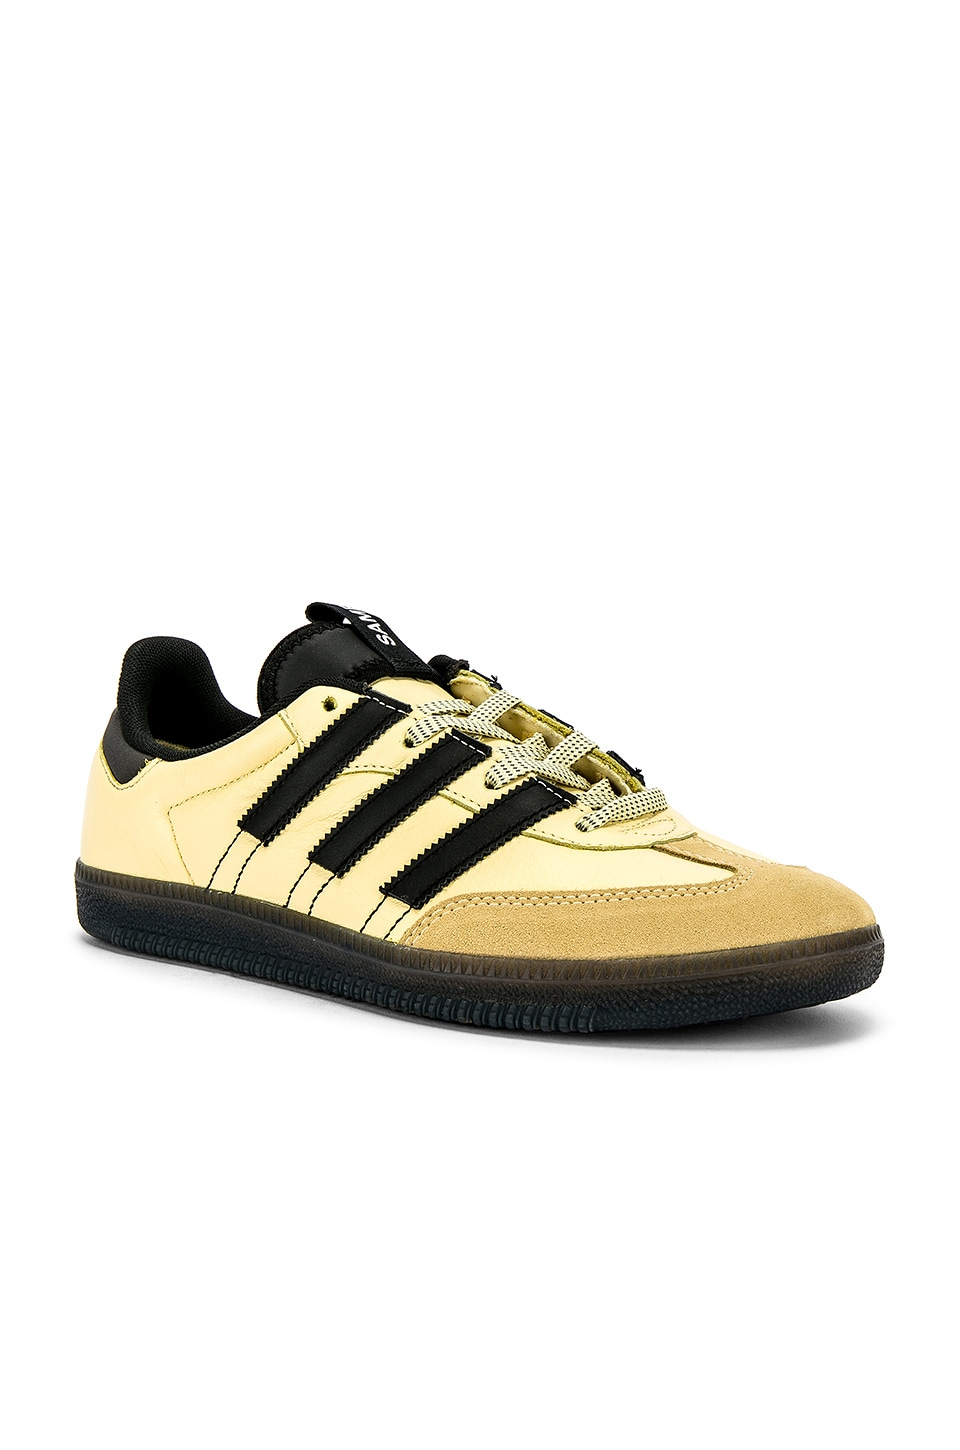 adidas Originals Samba OG MS in Easy Yellow & C Black & FTW White